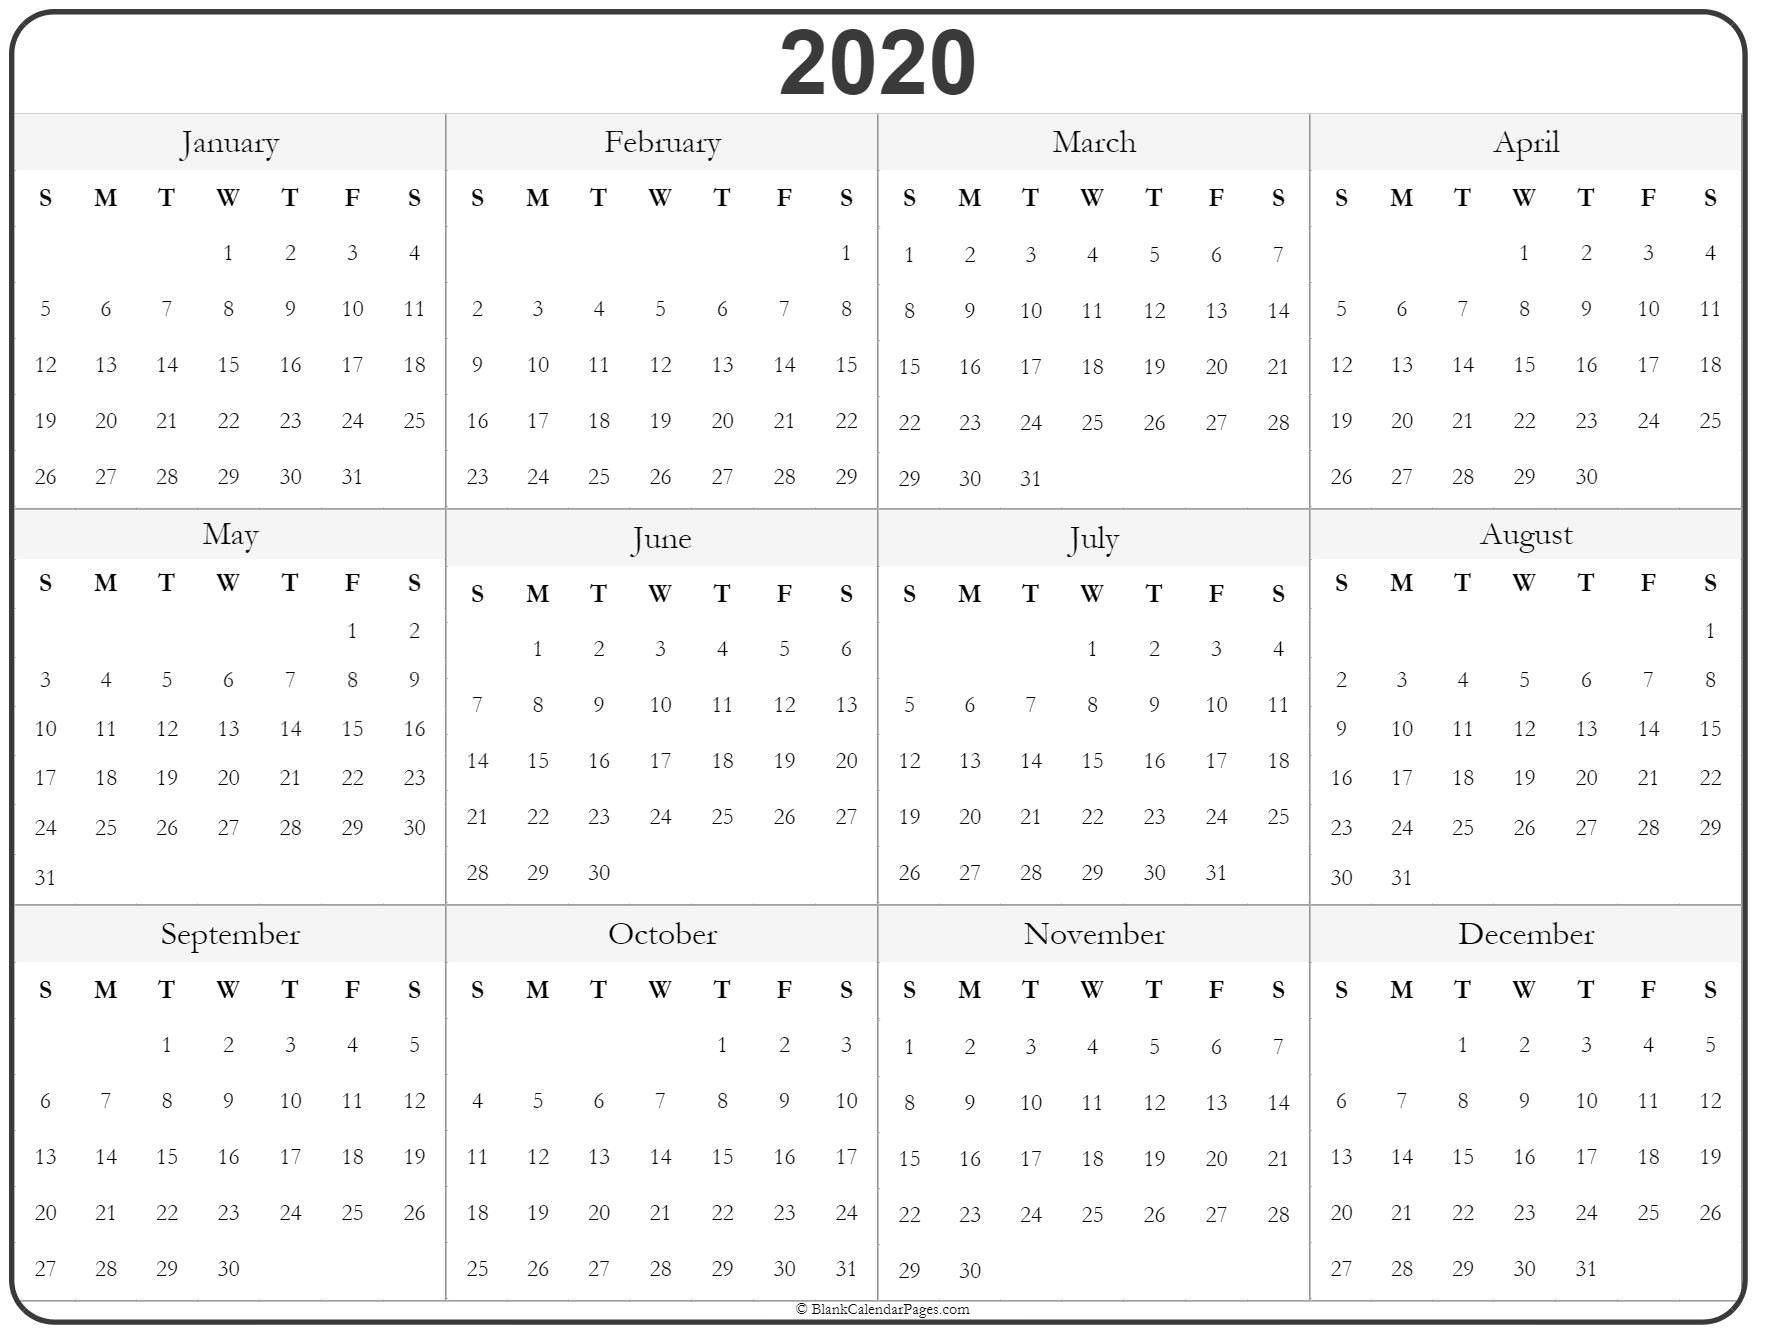 2020 Year Calendar Yearly Printable Calendar 2020 Printable One Page Paper Trail Design In 2020 Printable Calendar Design Printable Yearly Calendar Calendar Printables